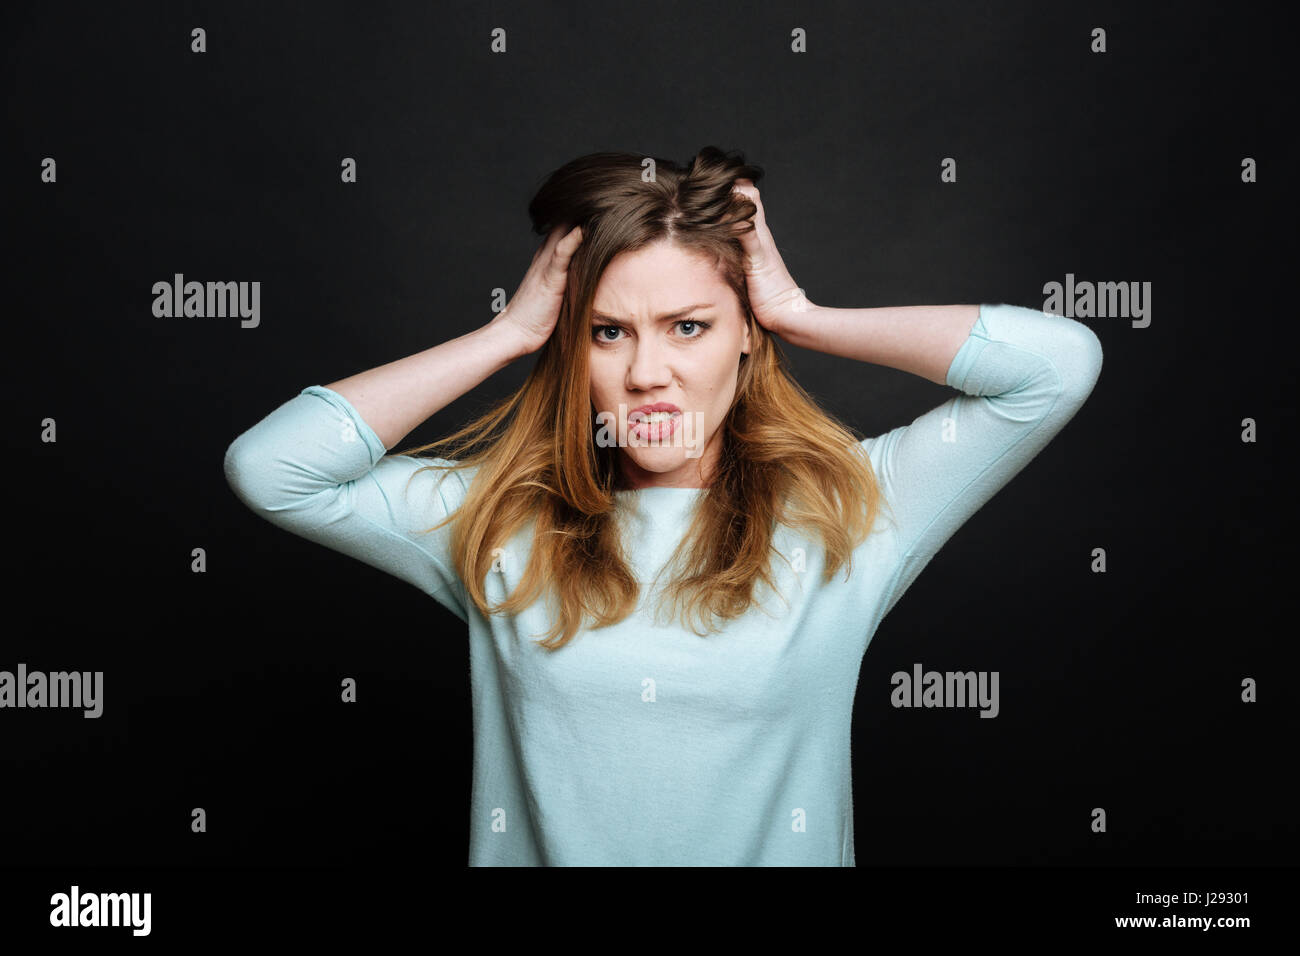 Angry young woman expressing disgust in the black colored studio - Stock Image